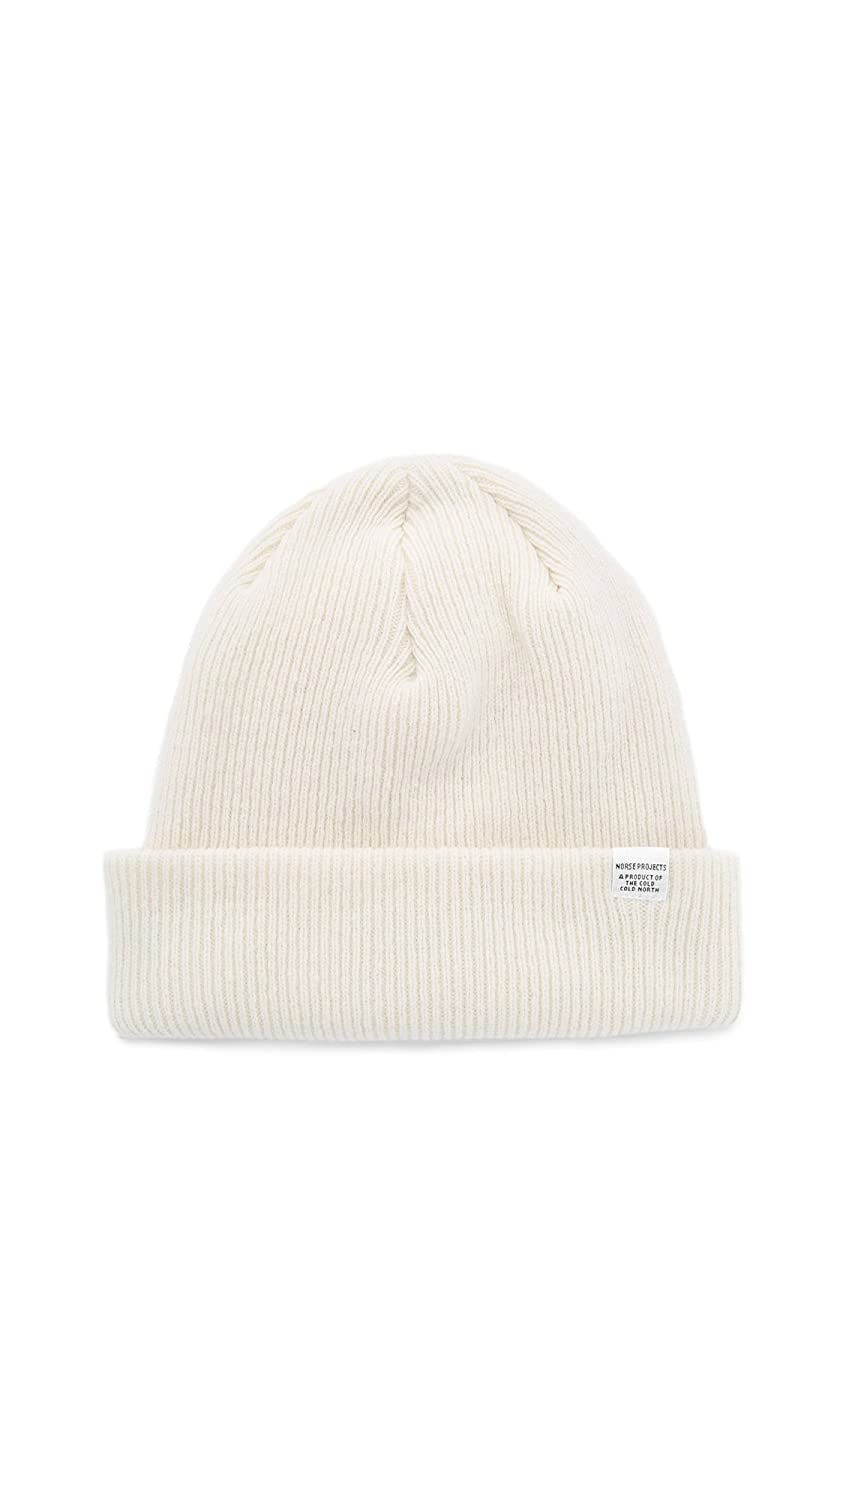 ca8fd86c Norse Projects Men's Norse Beanie Hat, Ecru, One Size at Amazon ...